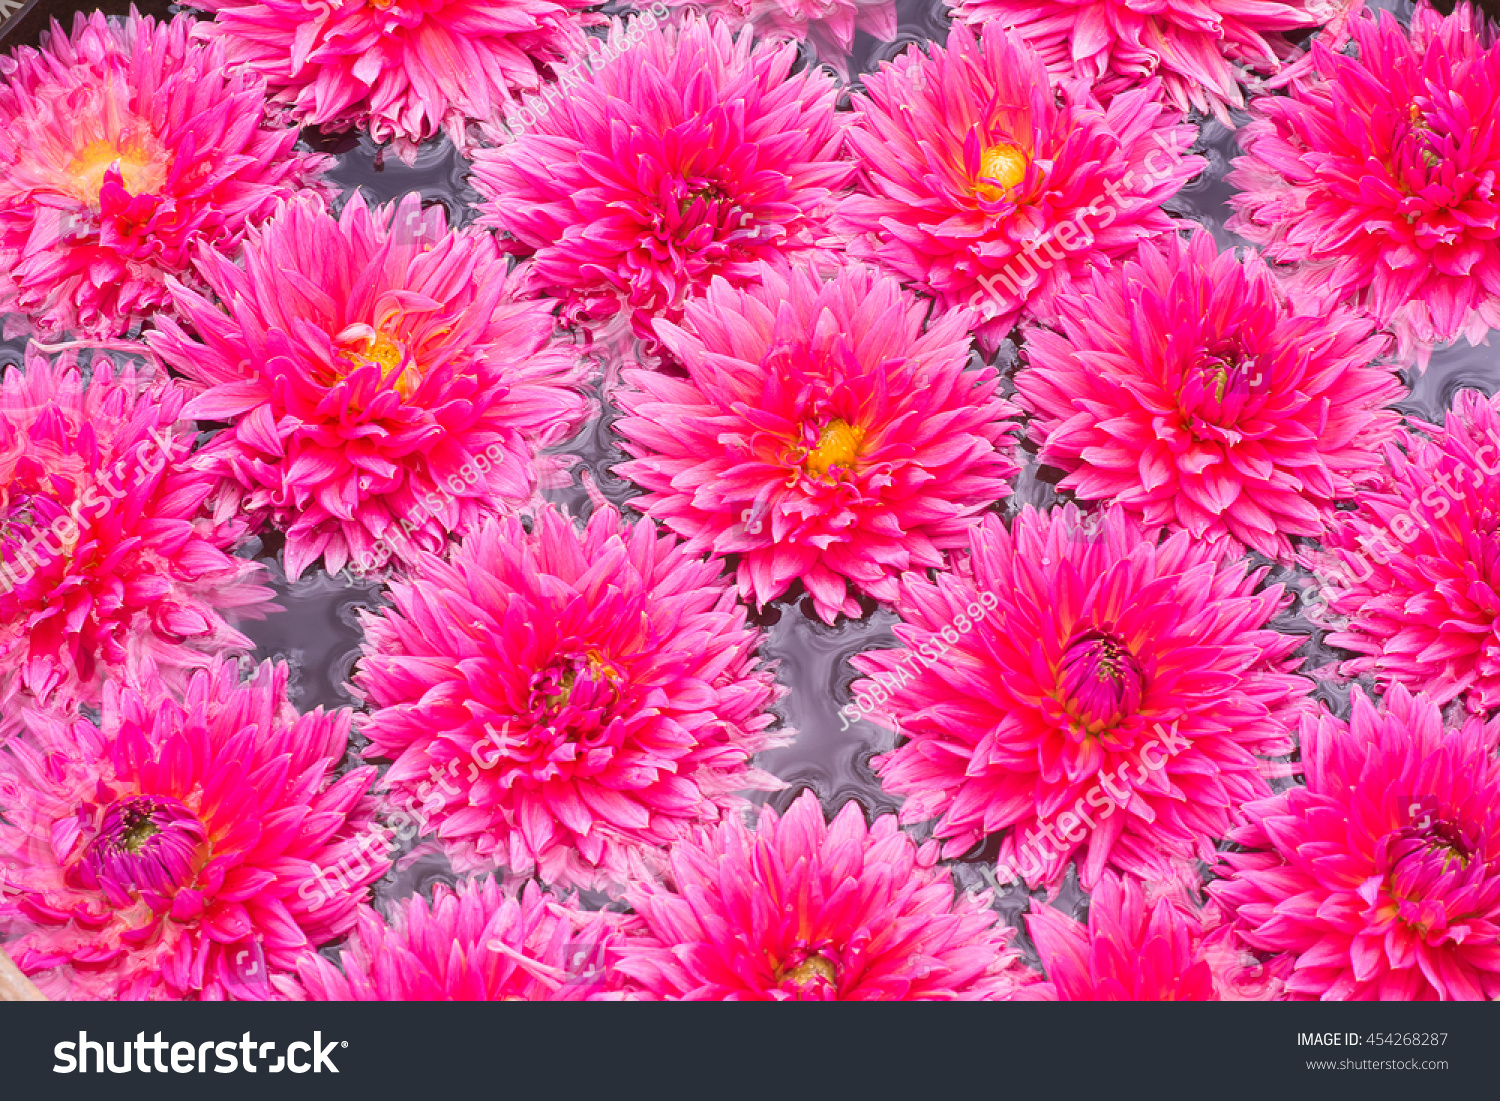 Dahlia Flowers On Top Of Water Background Ez Canvas